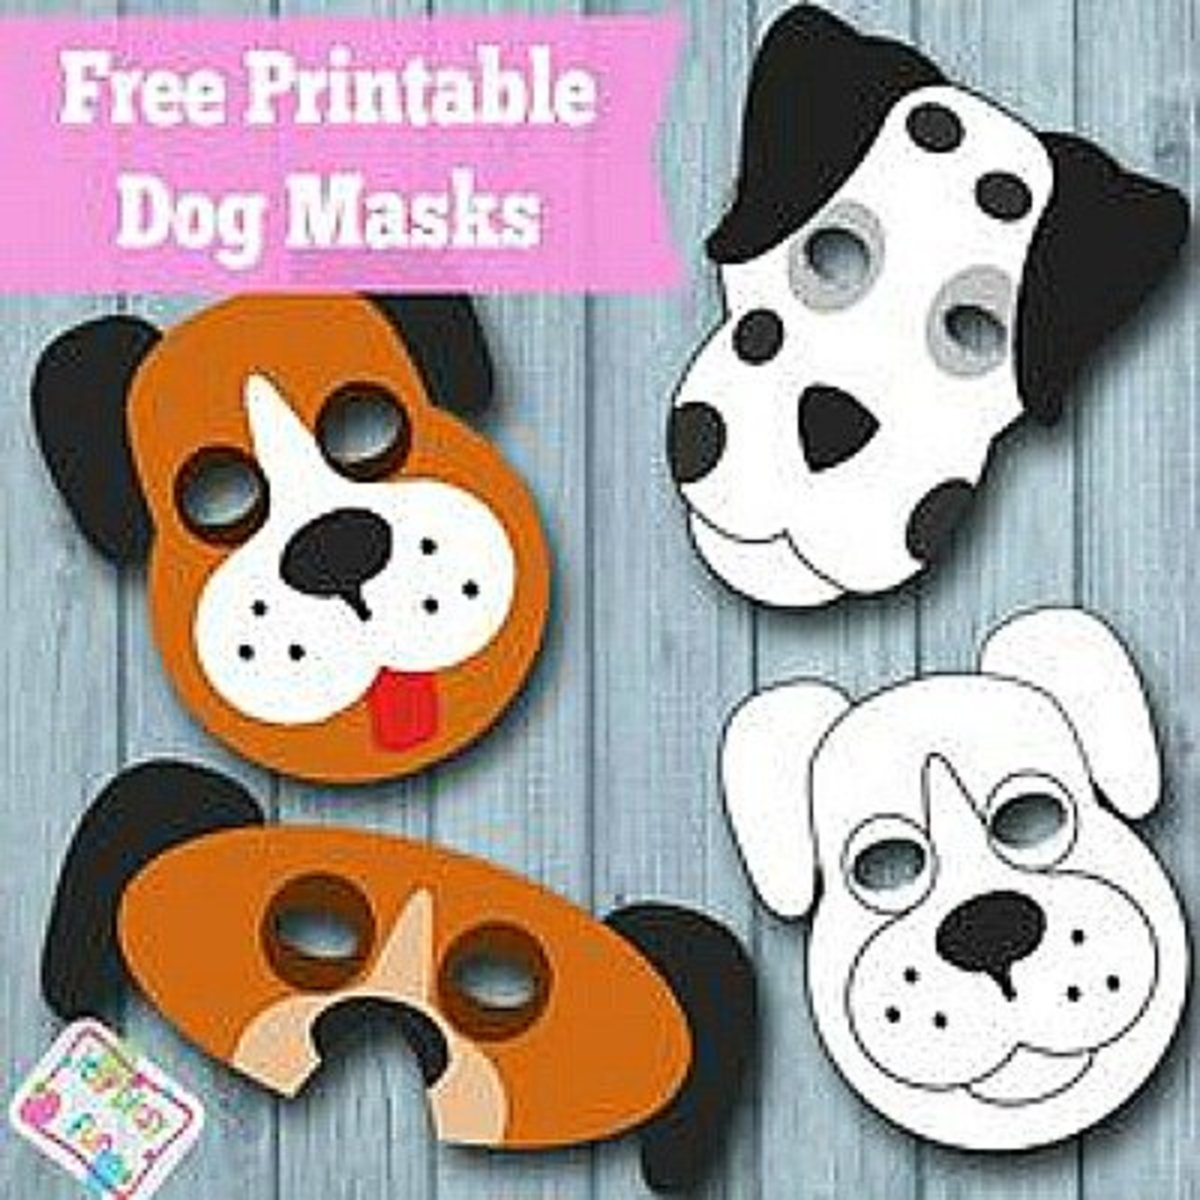 Youll Find The Printables To Make These Dog Masks At Firstpalette Kids Will Have A Blast Making And Wearing